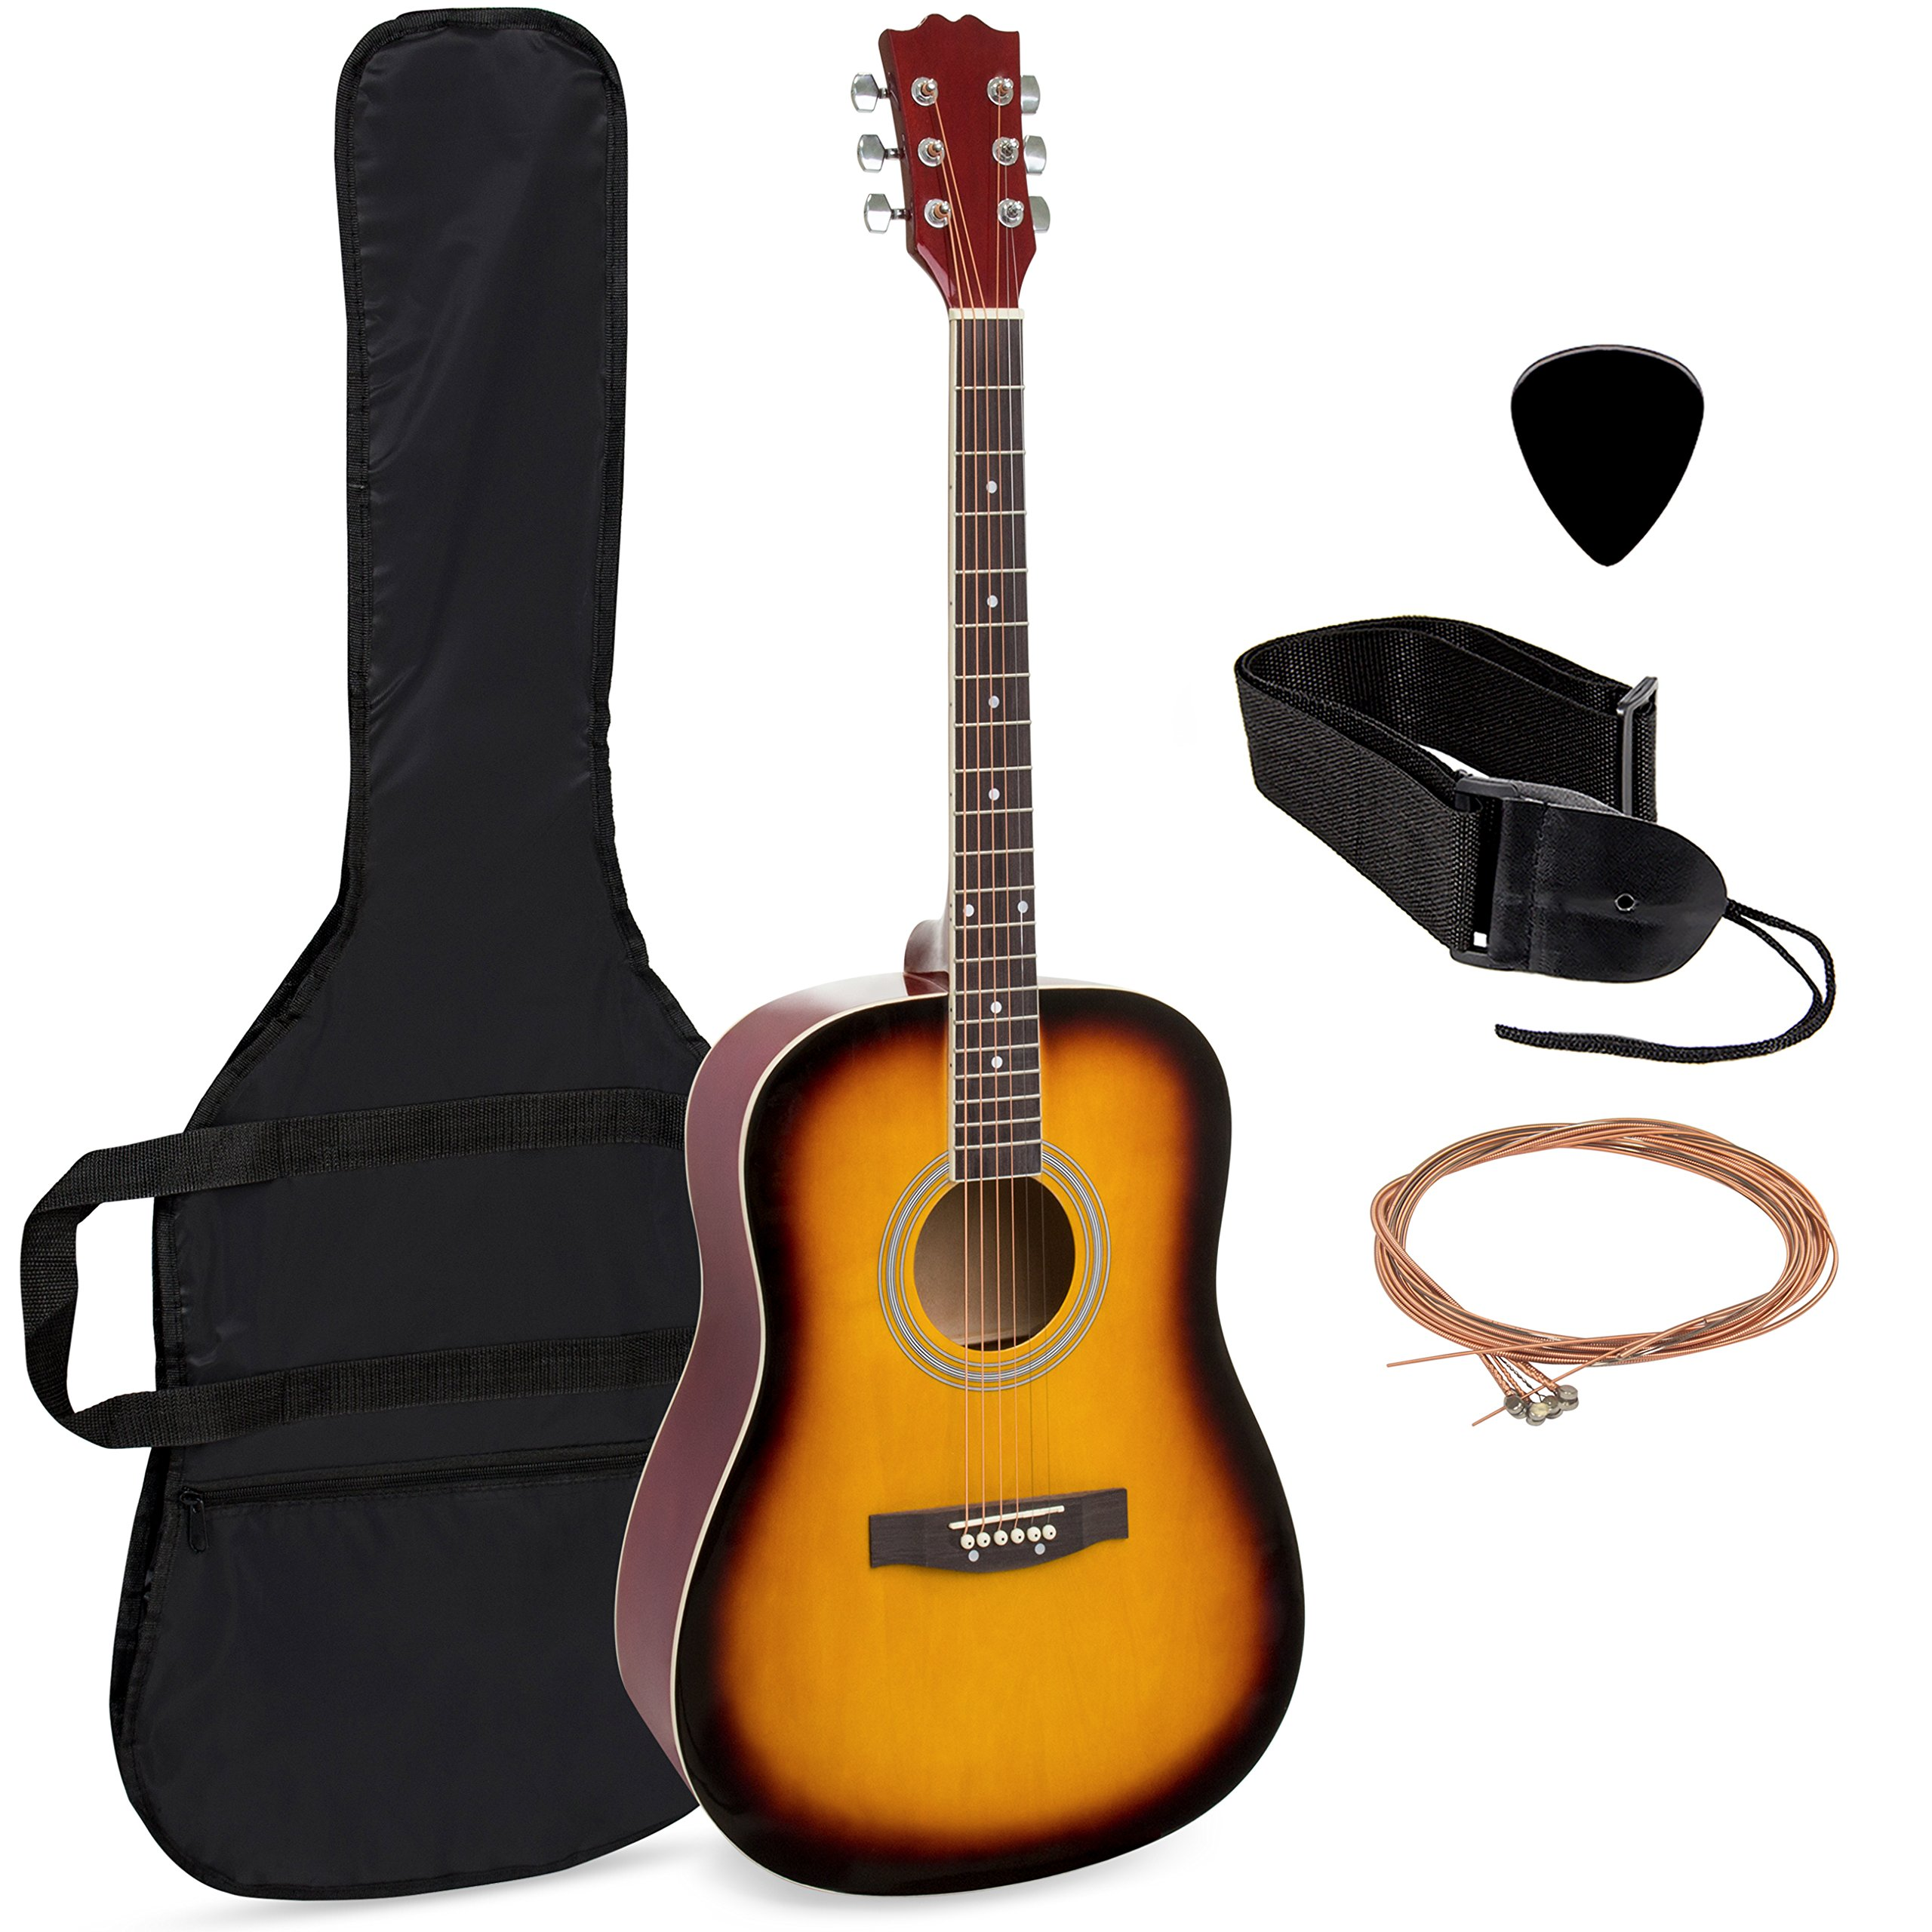 Best Choice Products 41in Full Size All-Wood Acoustic Guitar Starter Kit w/Case, Pick, Shoulder Strap, Extra Strings (Sunburst) by Best Choice Products